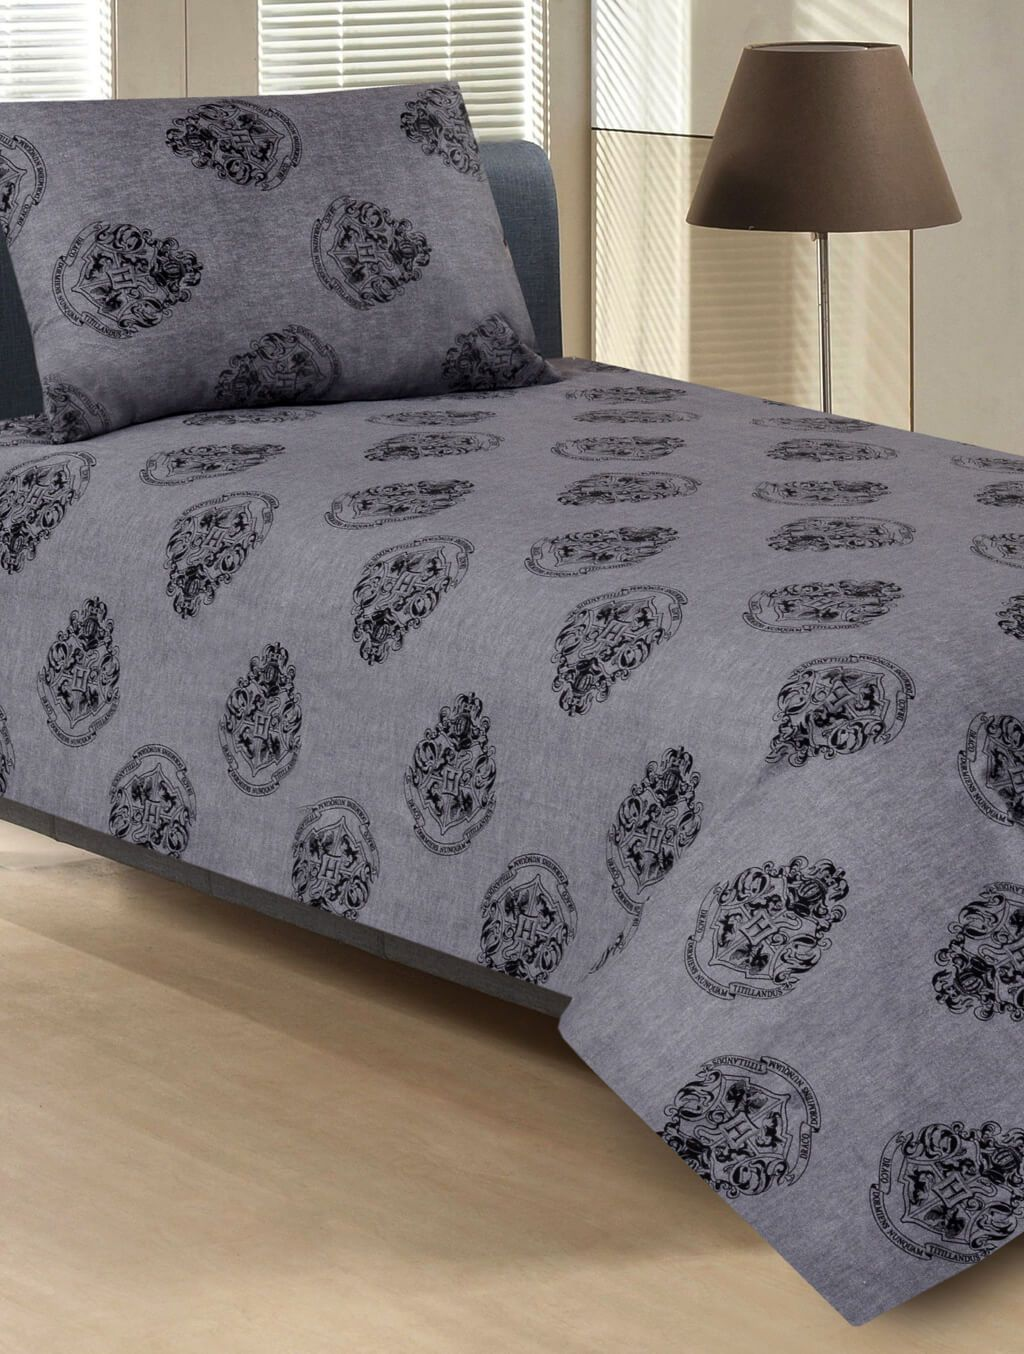 BED SHEET R2G 17119 SINGLE Printed Range 144 TC HOMBEDROO